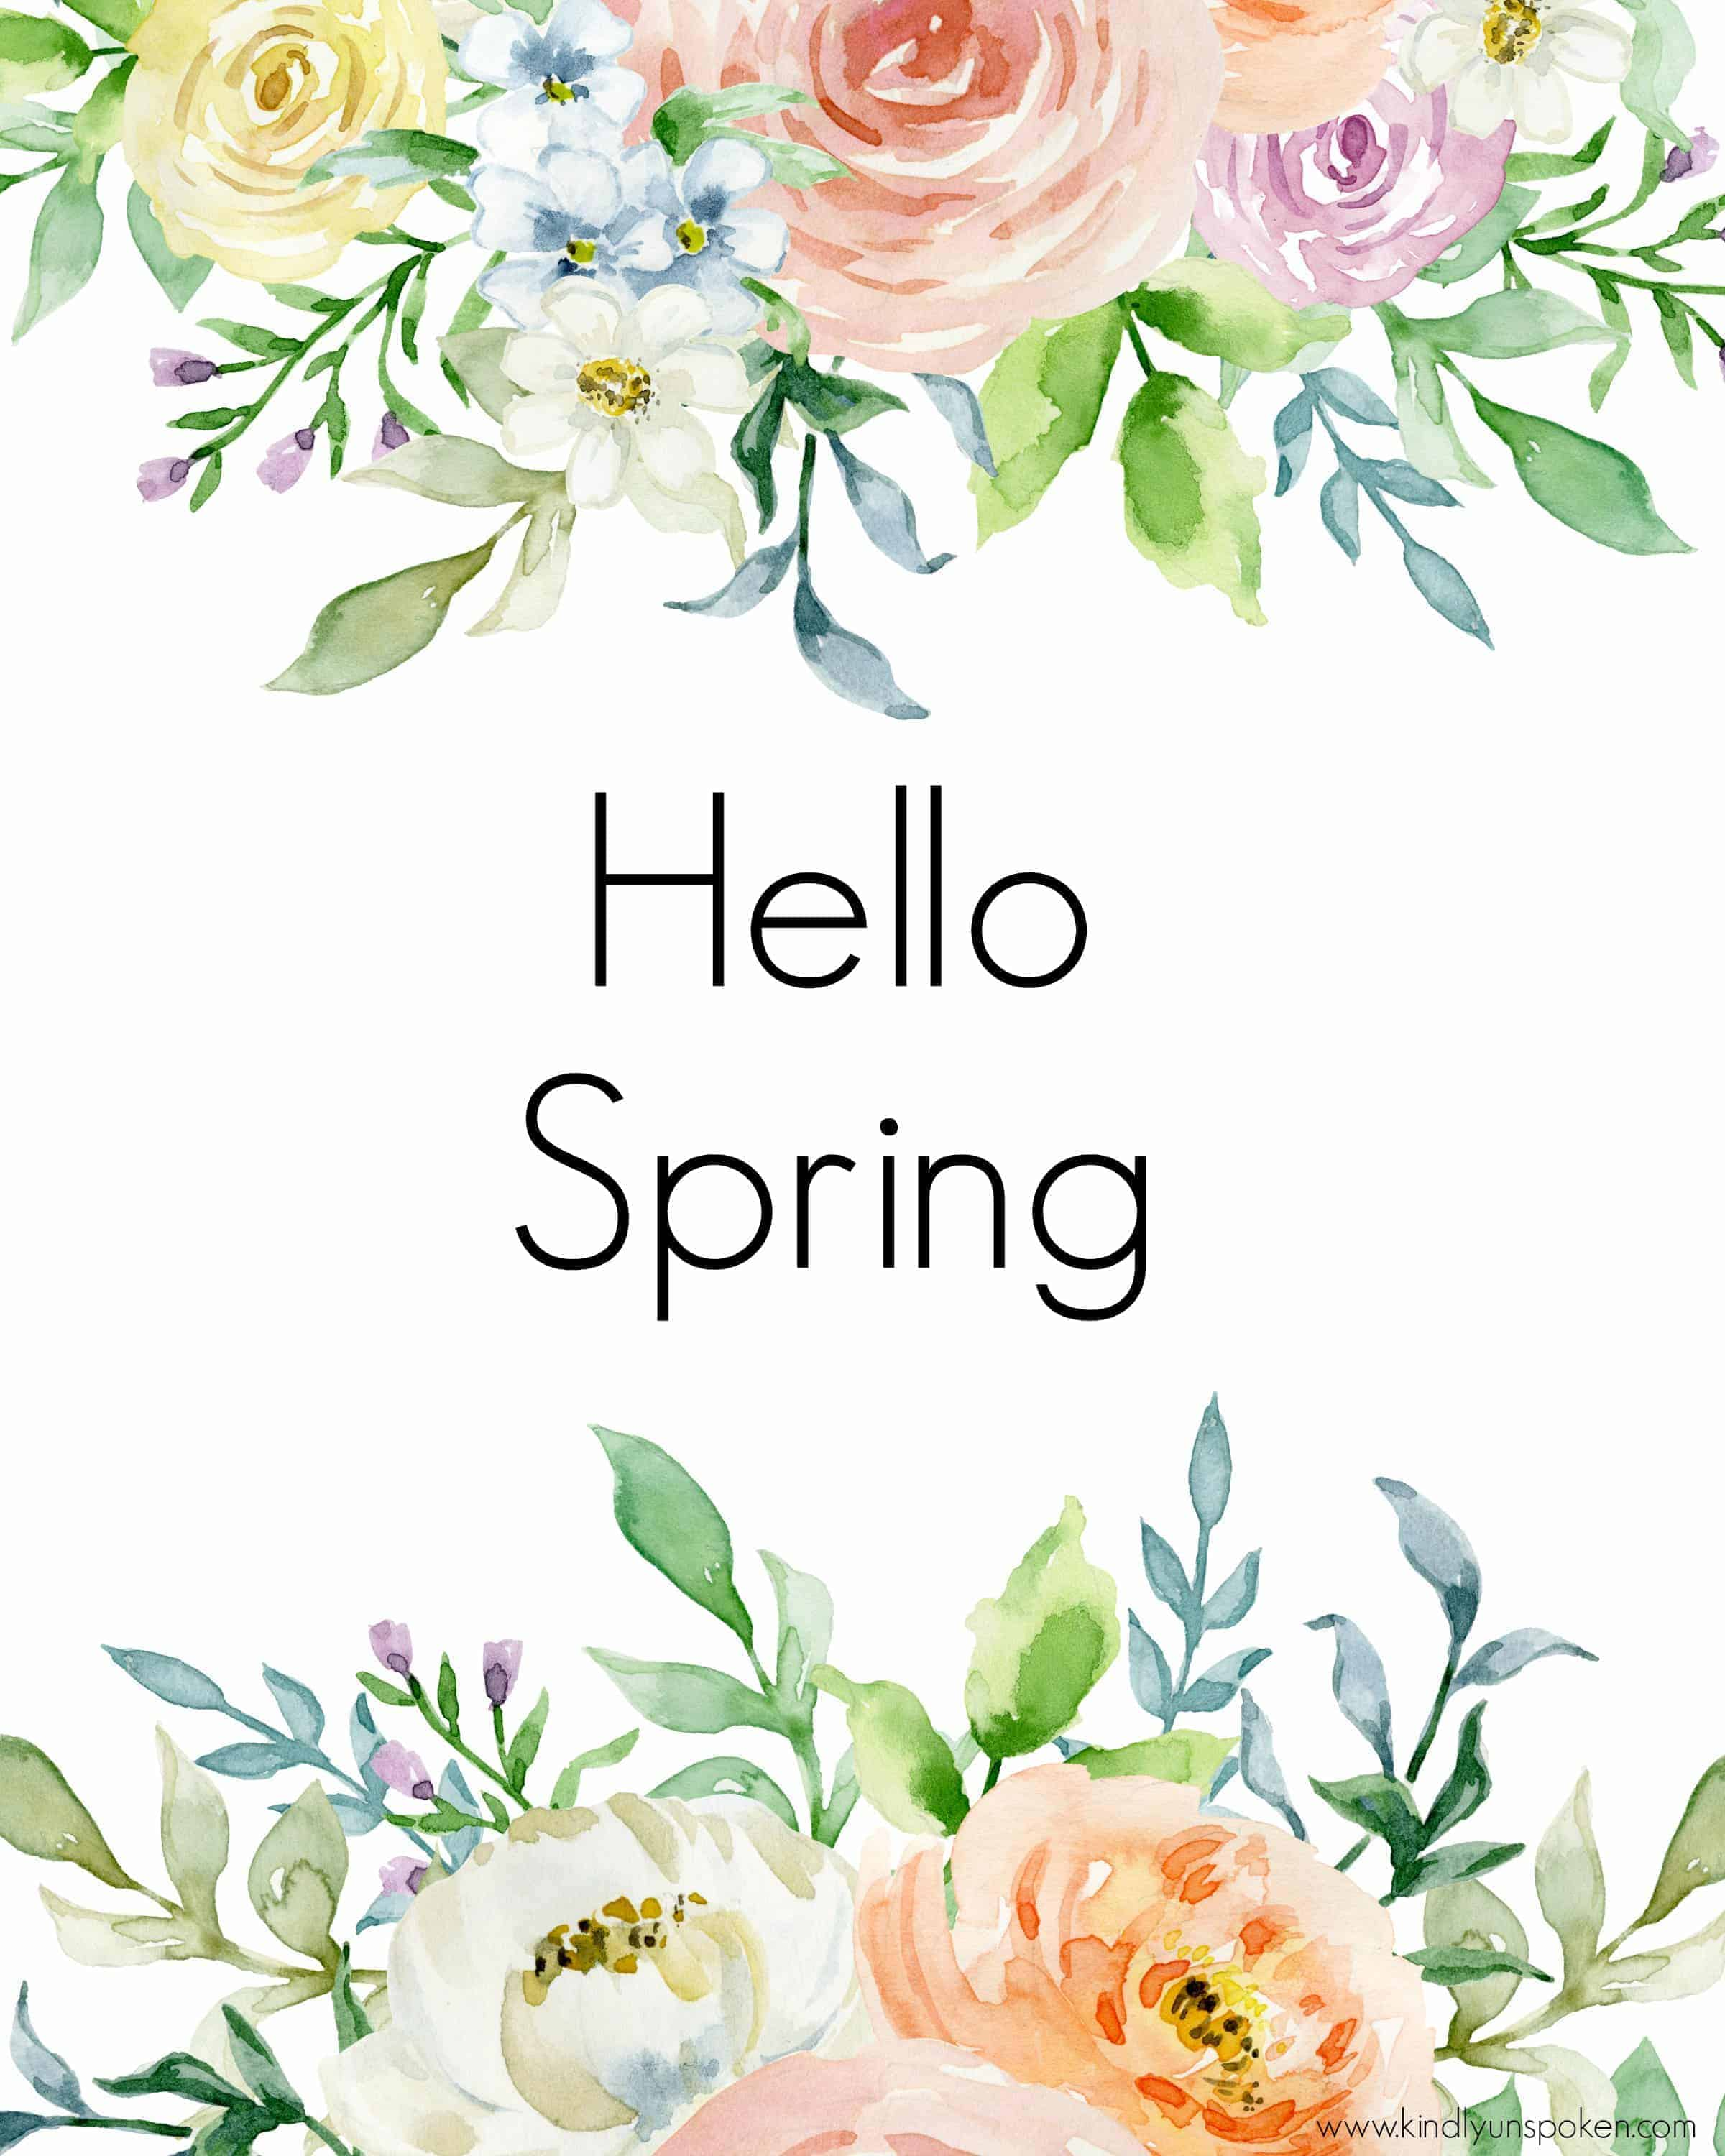 photograph about Spring Printable named 3 Absolutely free Spring Printables in direction of Brighten Up Your Residence - Kindly